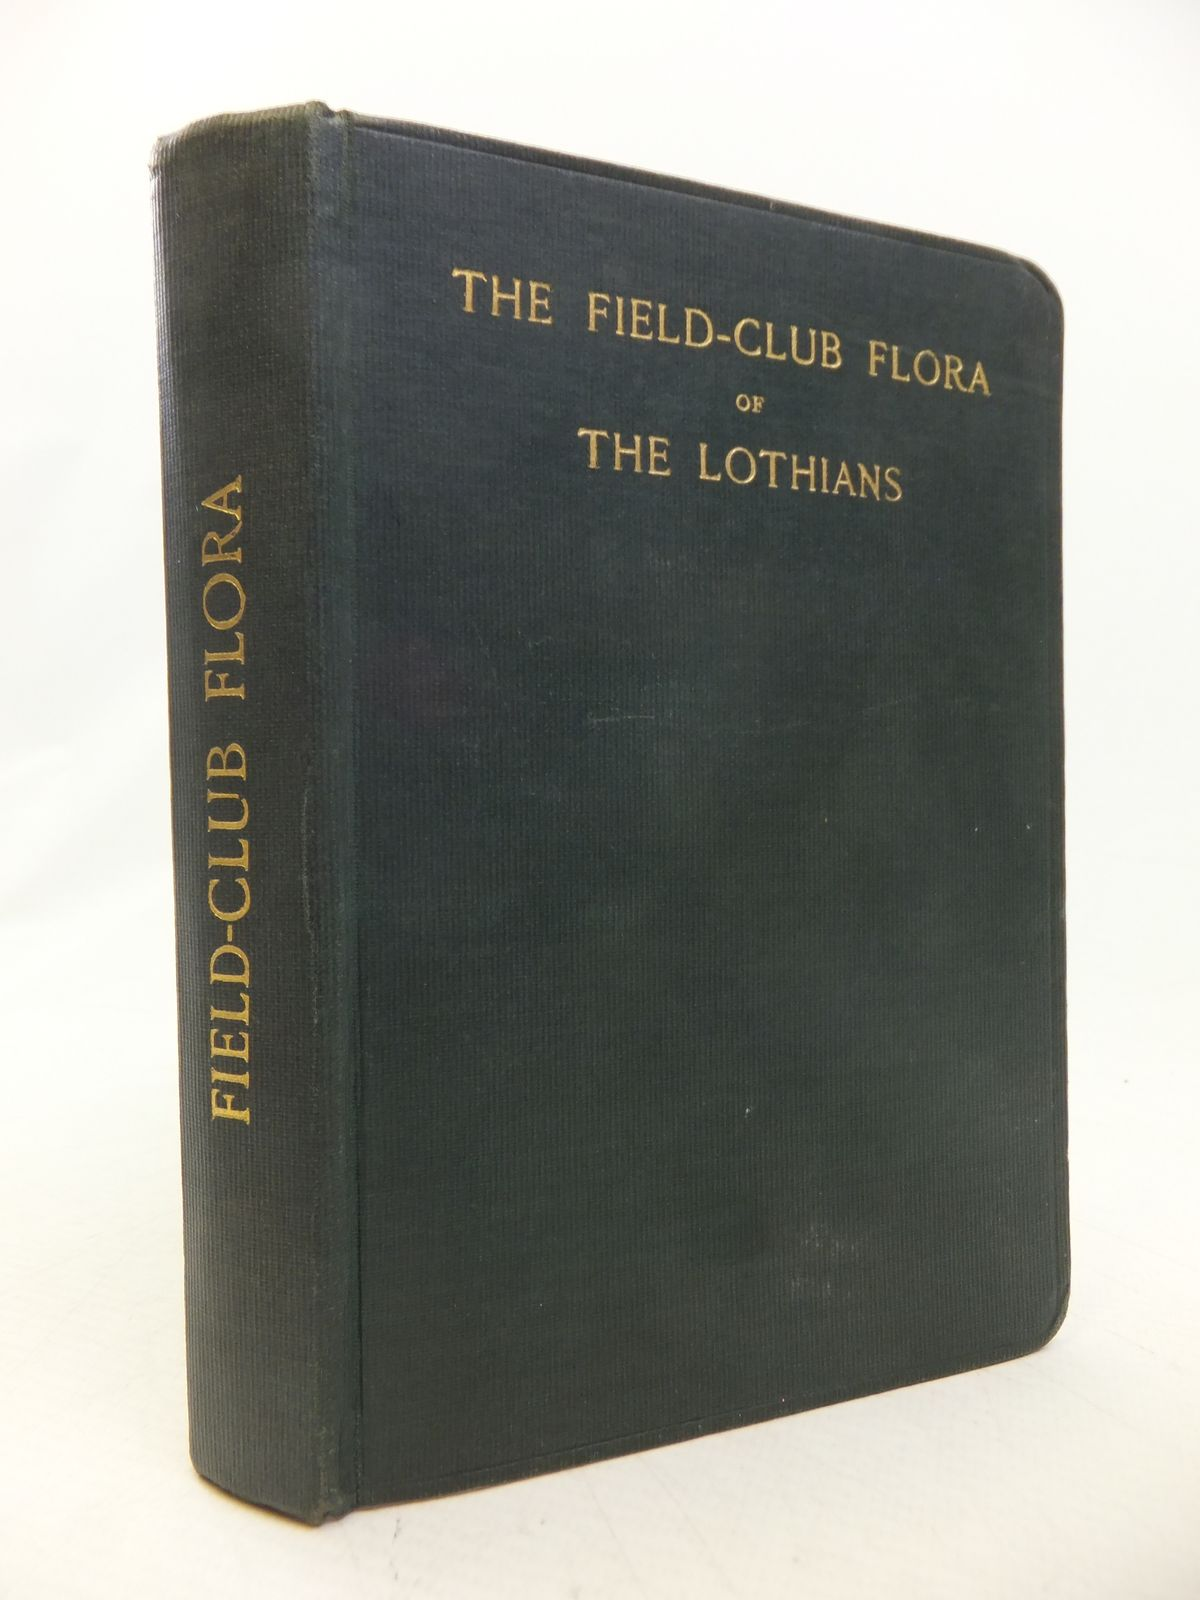 Photo of THE FIELD-CLUB FLORA OF THE LOTHIANS written by Martin, Isa. published by William Blackwood (STOCK CODE: 1809103)  for sale by Stella & Rose's Books